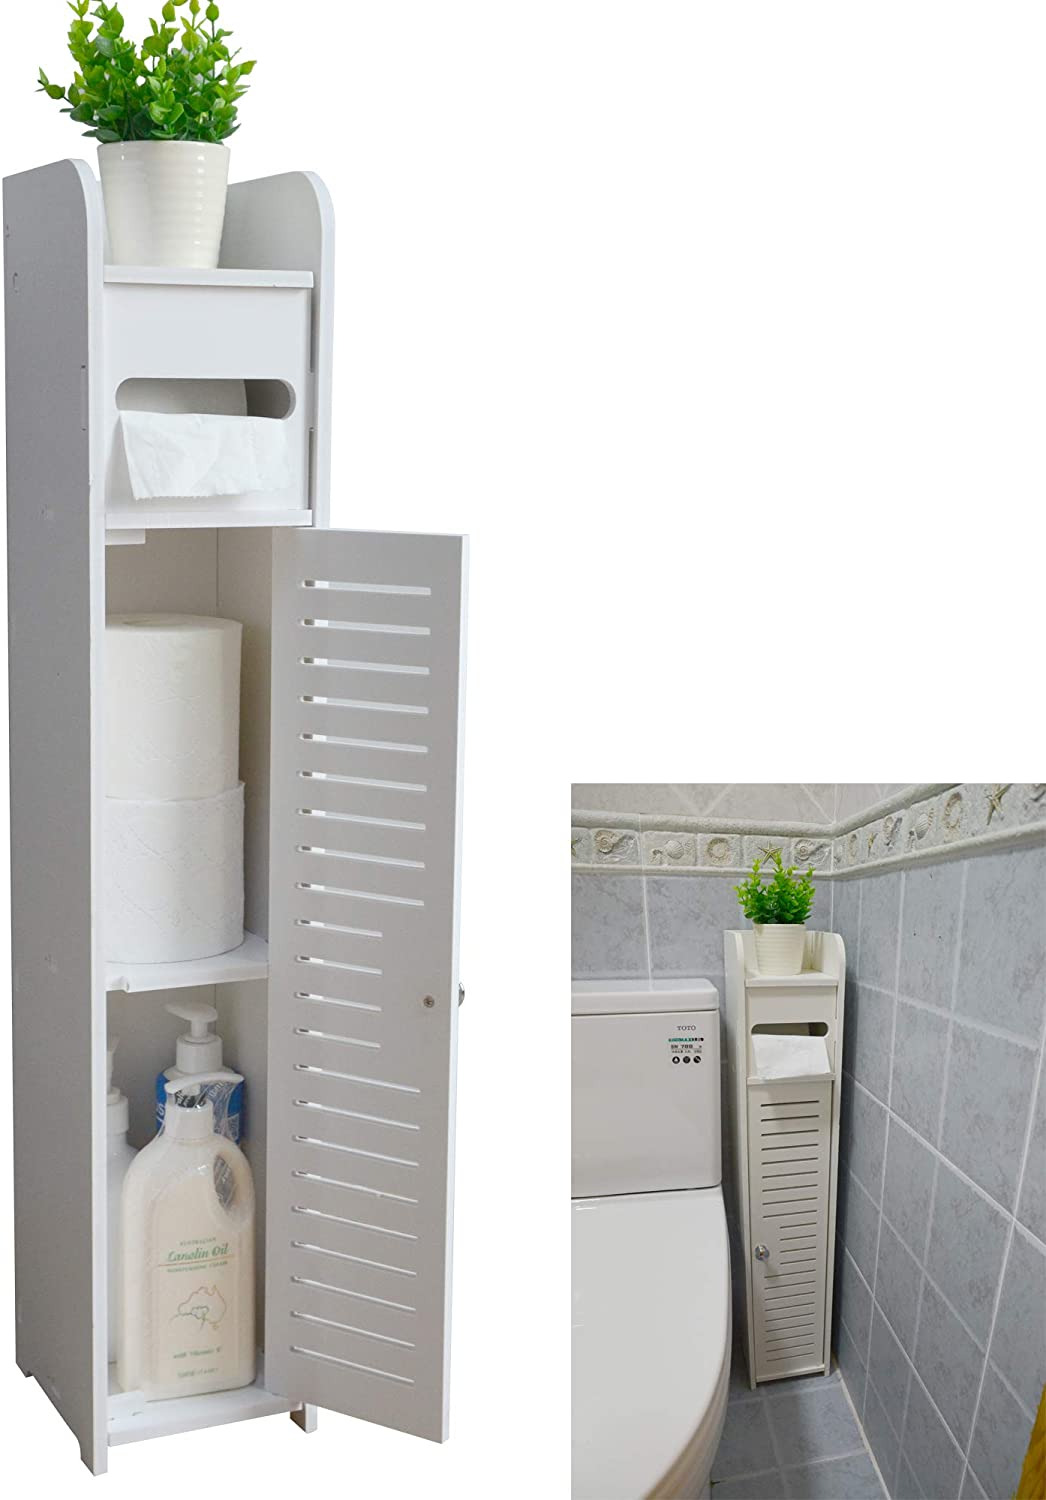 Small Storage Cabinet with Doors Inspirational Aojezor Small Bathroom Storage Corner Floor Cabinet with Doors and Shelves Thin toilet Vanity Cabinet Narrow Bath Sink organizer towel Storage